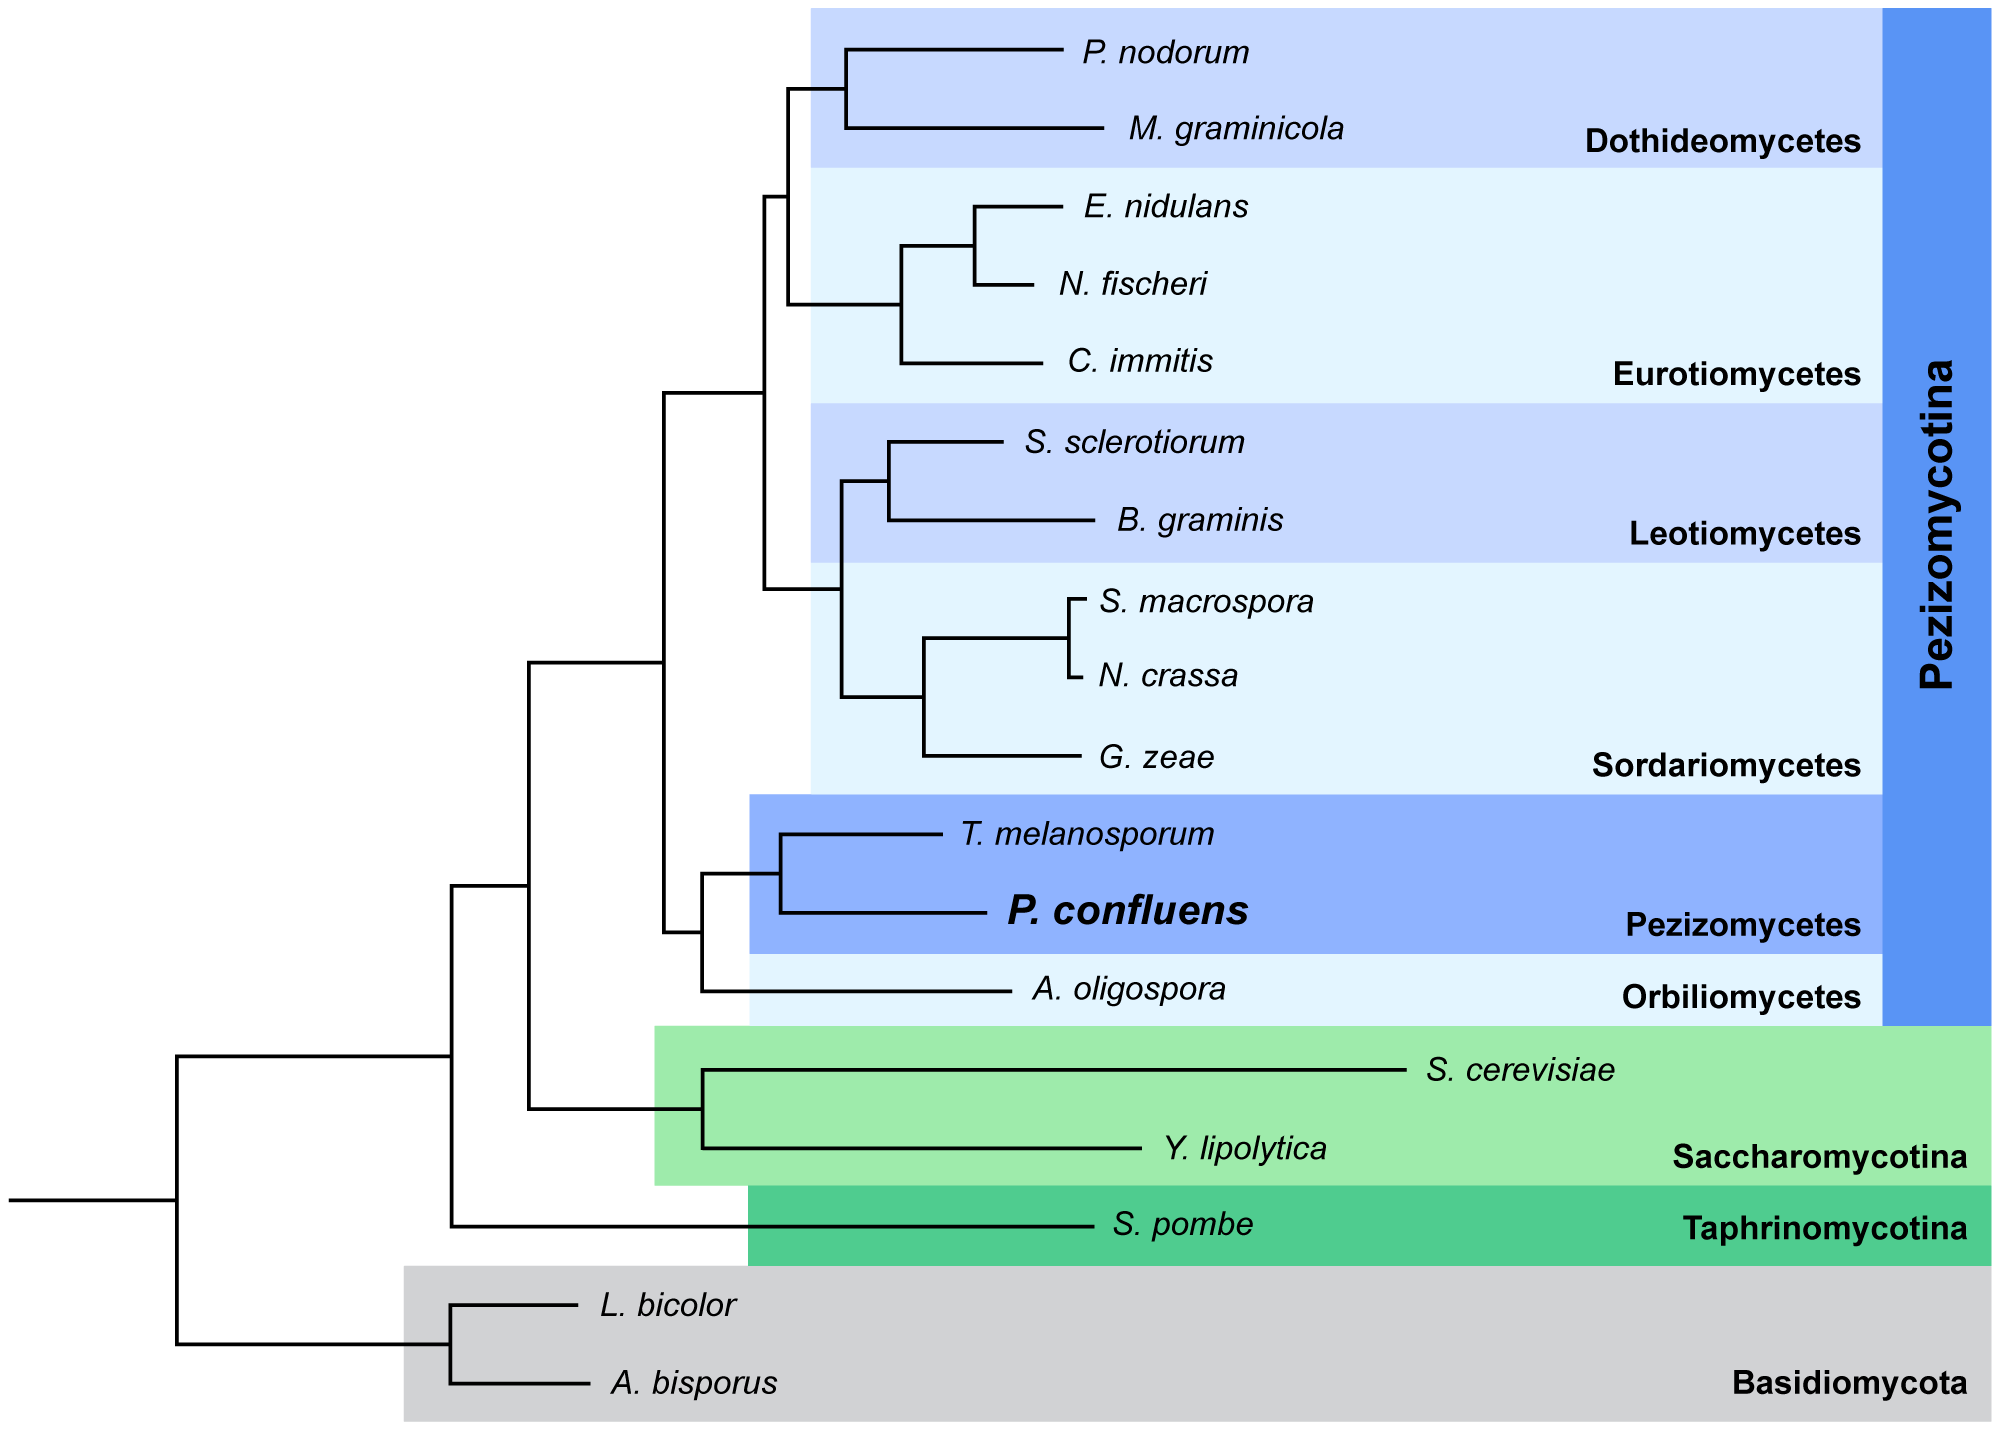 Species tree of 18 fungal species based on phylome reconstruction.